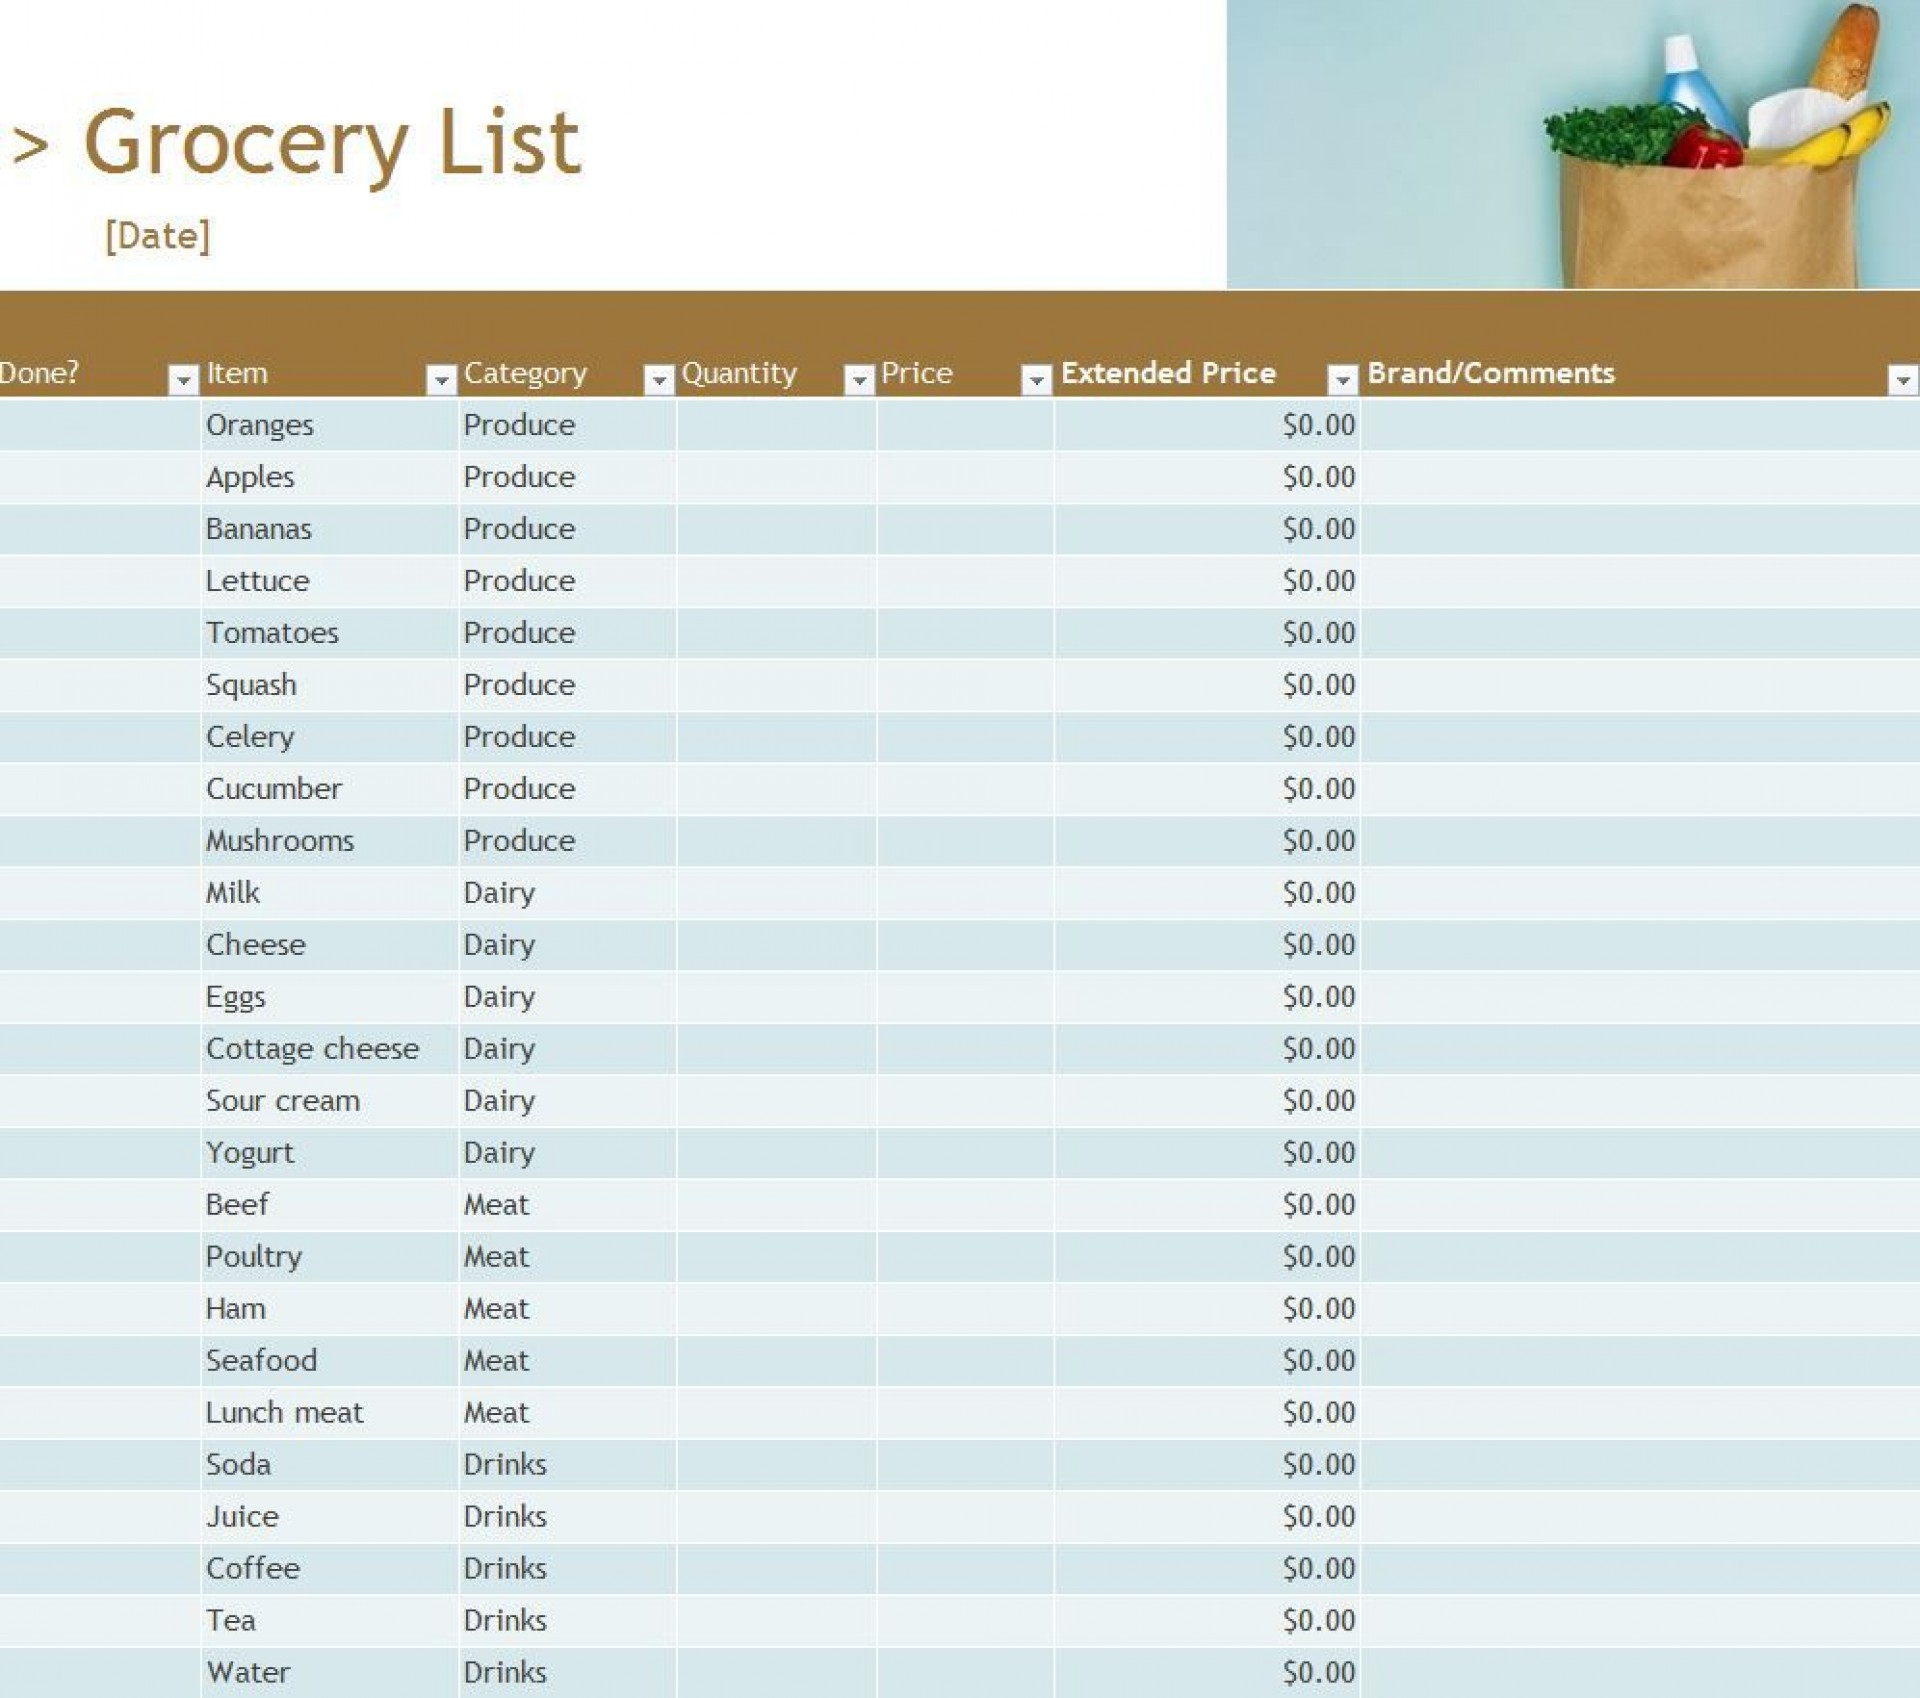 003 Stupendou Grocery List Template Excel Free Download High Resolution 1920